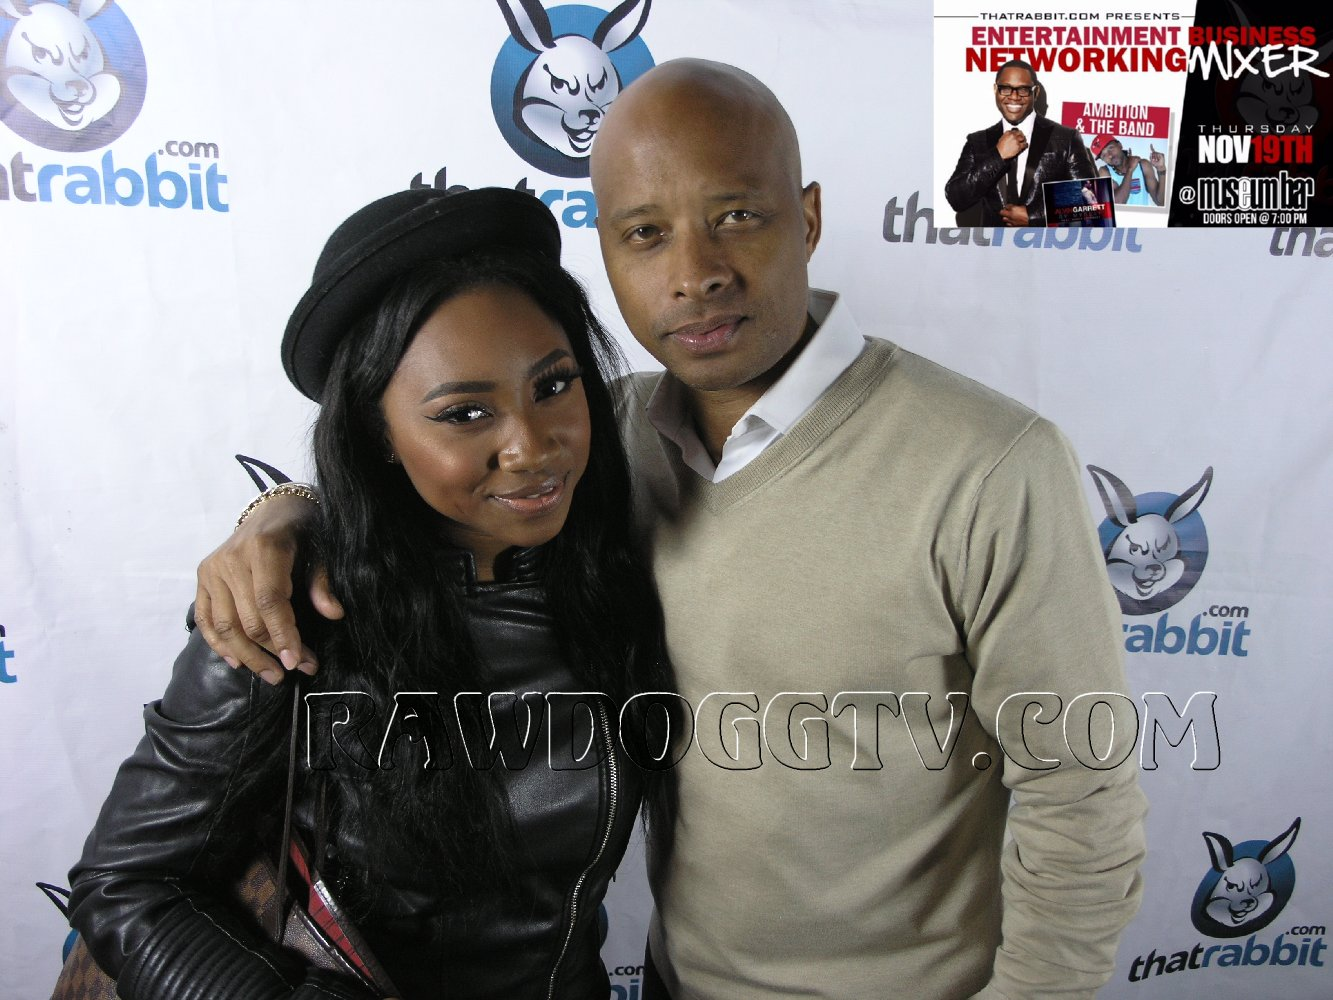 ThatRabbit Magazine Networking Mixer 2015 Museum Bar Atlanta Ray Hamilton (32)